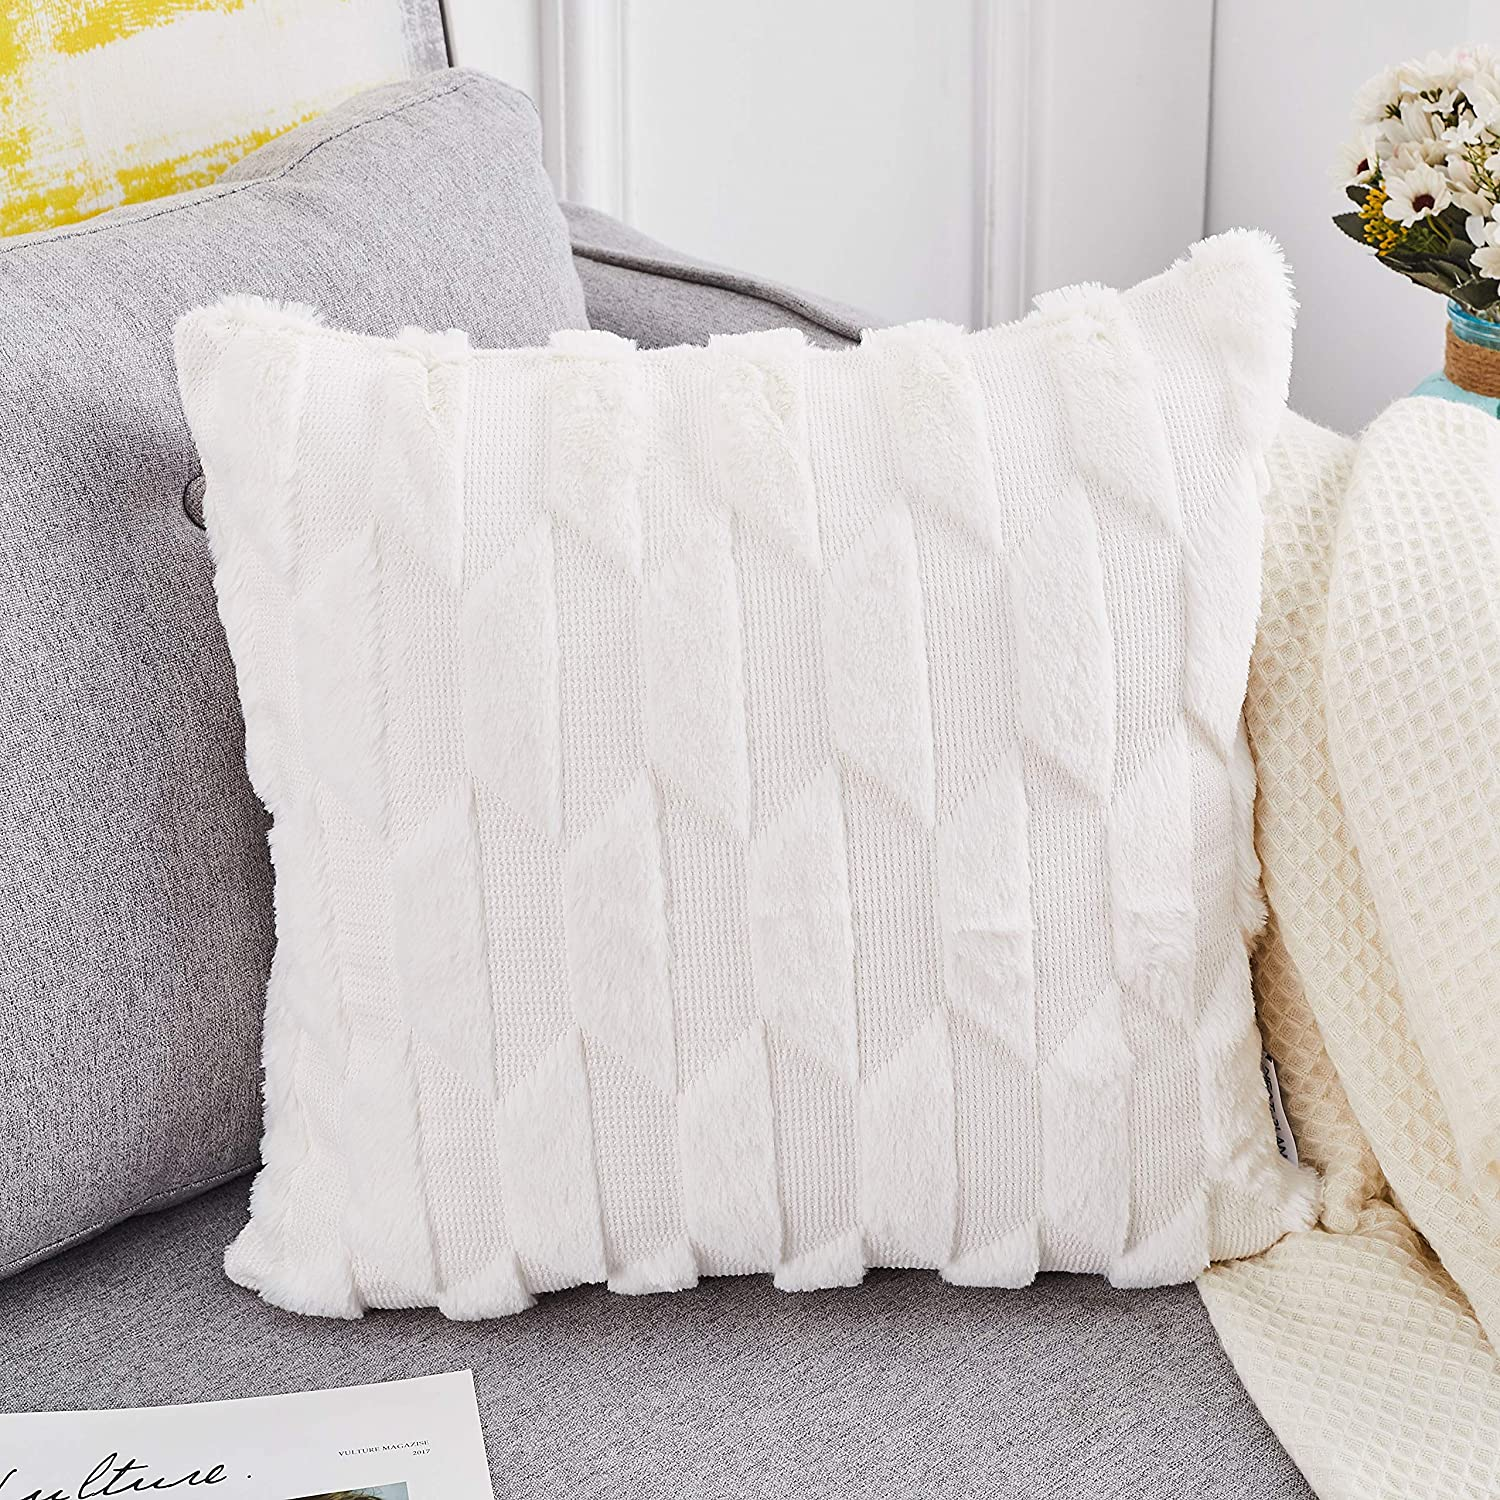 NeatBlanc Soft Plush Faux Fur Decorative Throw Pillow Covers Luxury Style Square Pillow Case Cushion Cover 18 x 18 inches 45 x 45 cm for Couch Bed Car Office (White - 1 Pack, 18 x 18)